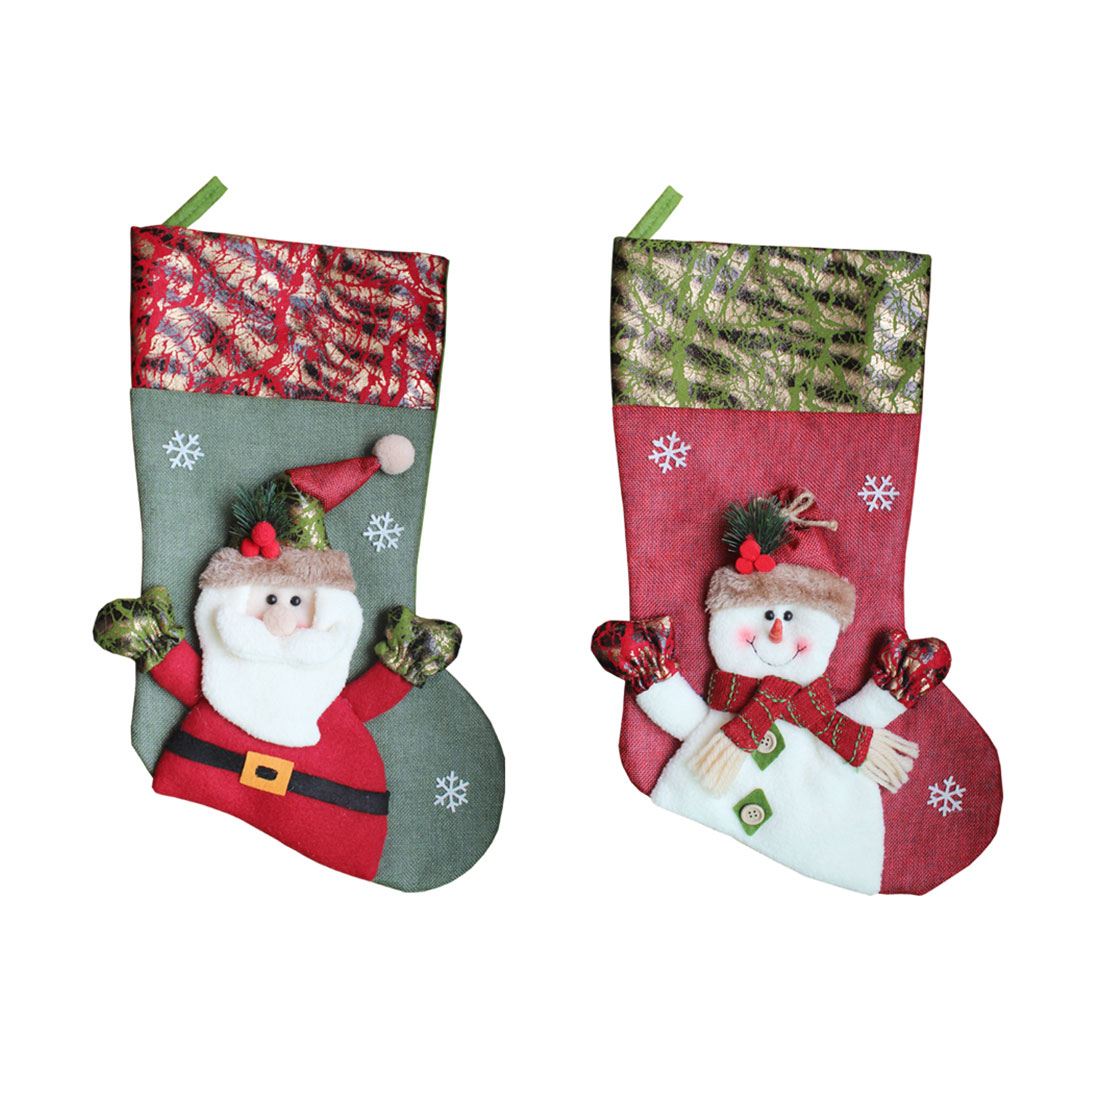 Christmas Candy Gift bags for childrens Christmas Pendant Gift Old man snowman Decorative Socks Christmas Ornament Packs